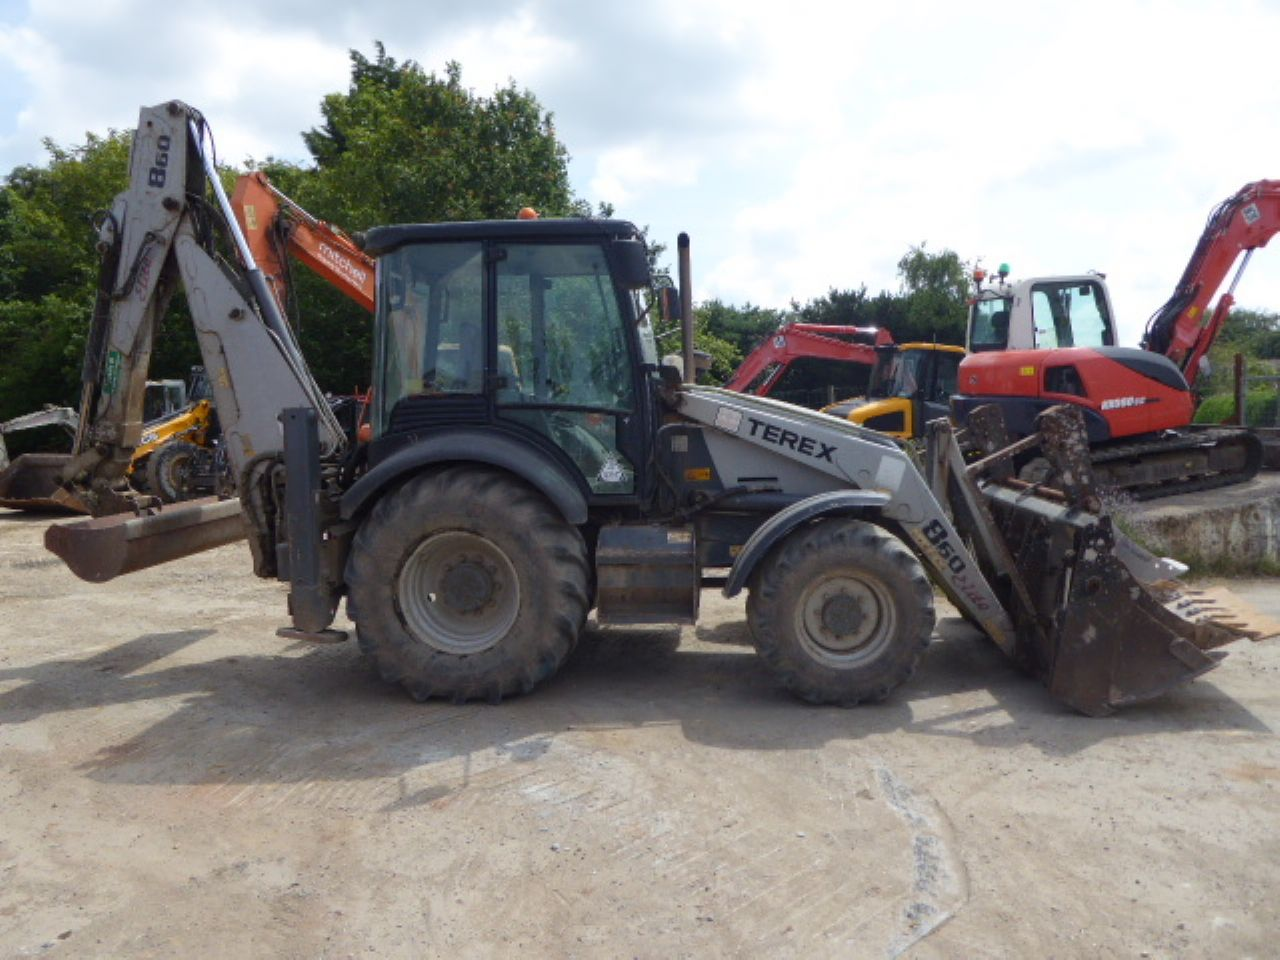 TEREX 860 ELITE SPECIAL EDITION BACKHOE LOADER